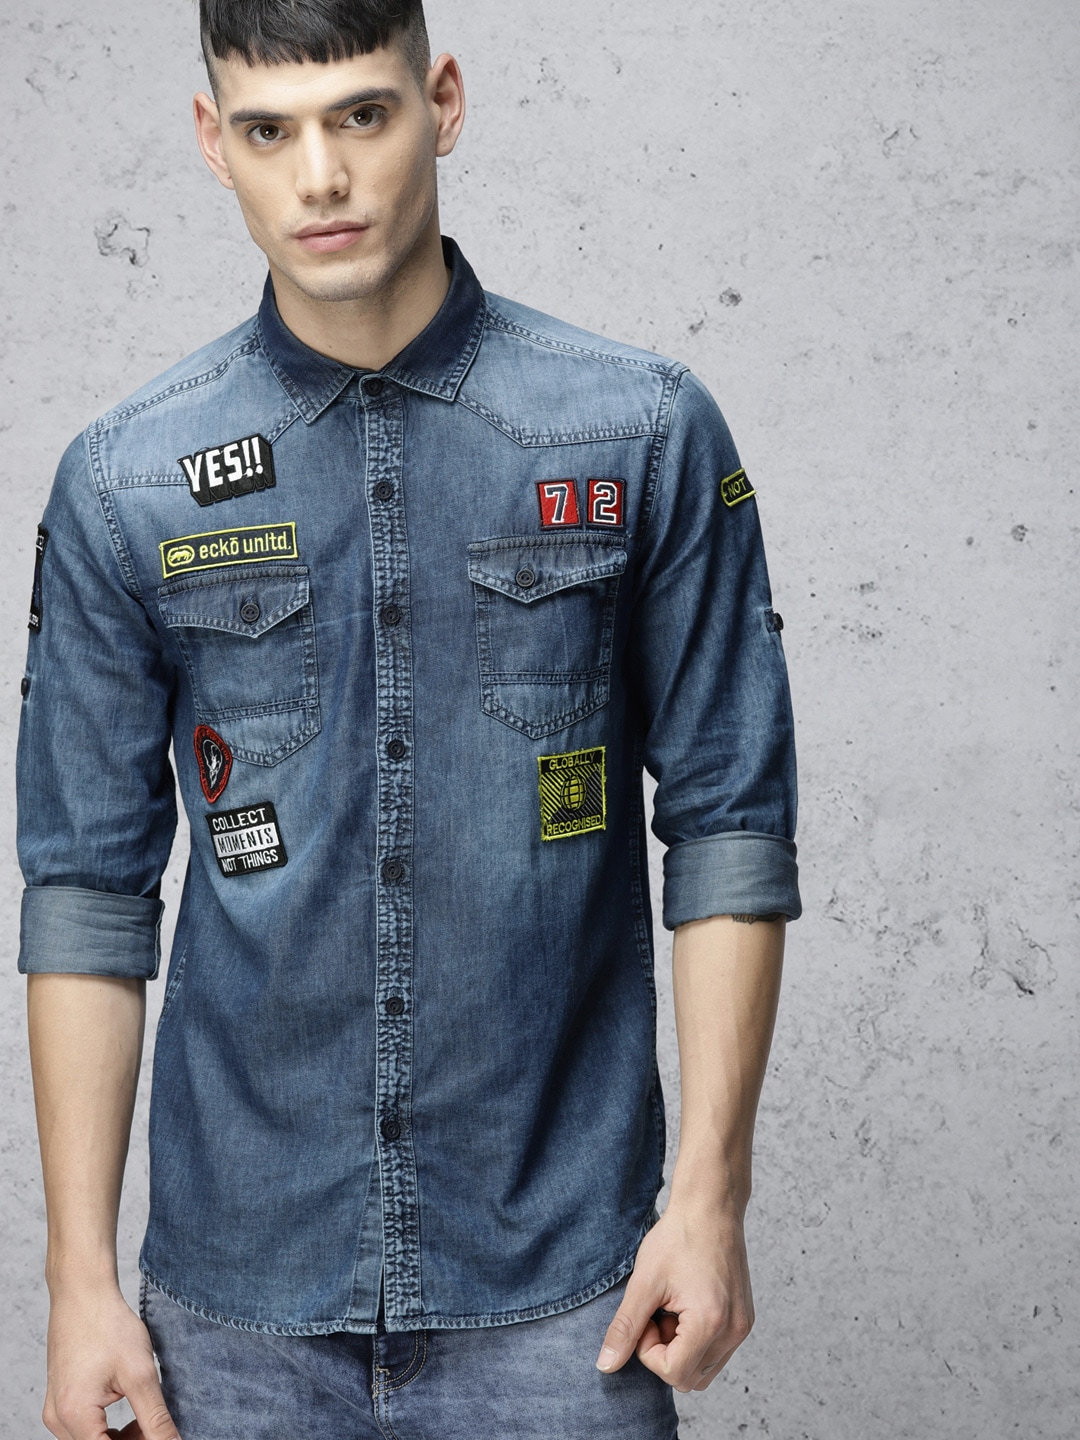 e738534ea81 2 In 1 Shirt - Buy 2 In 1 Shirt online in India